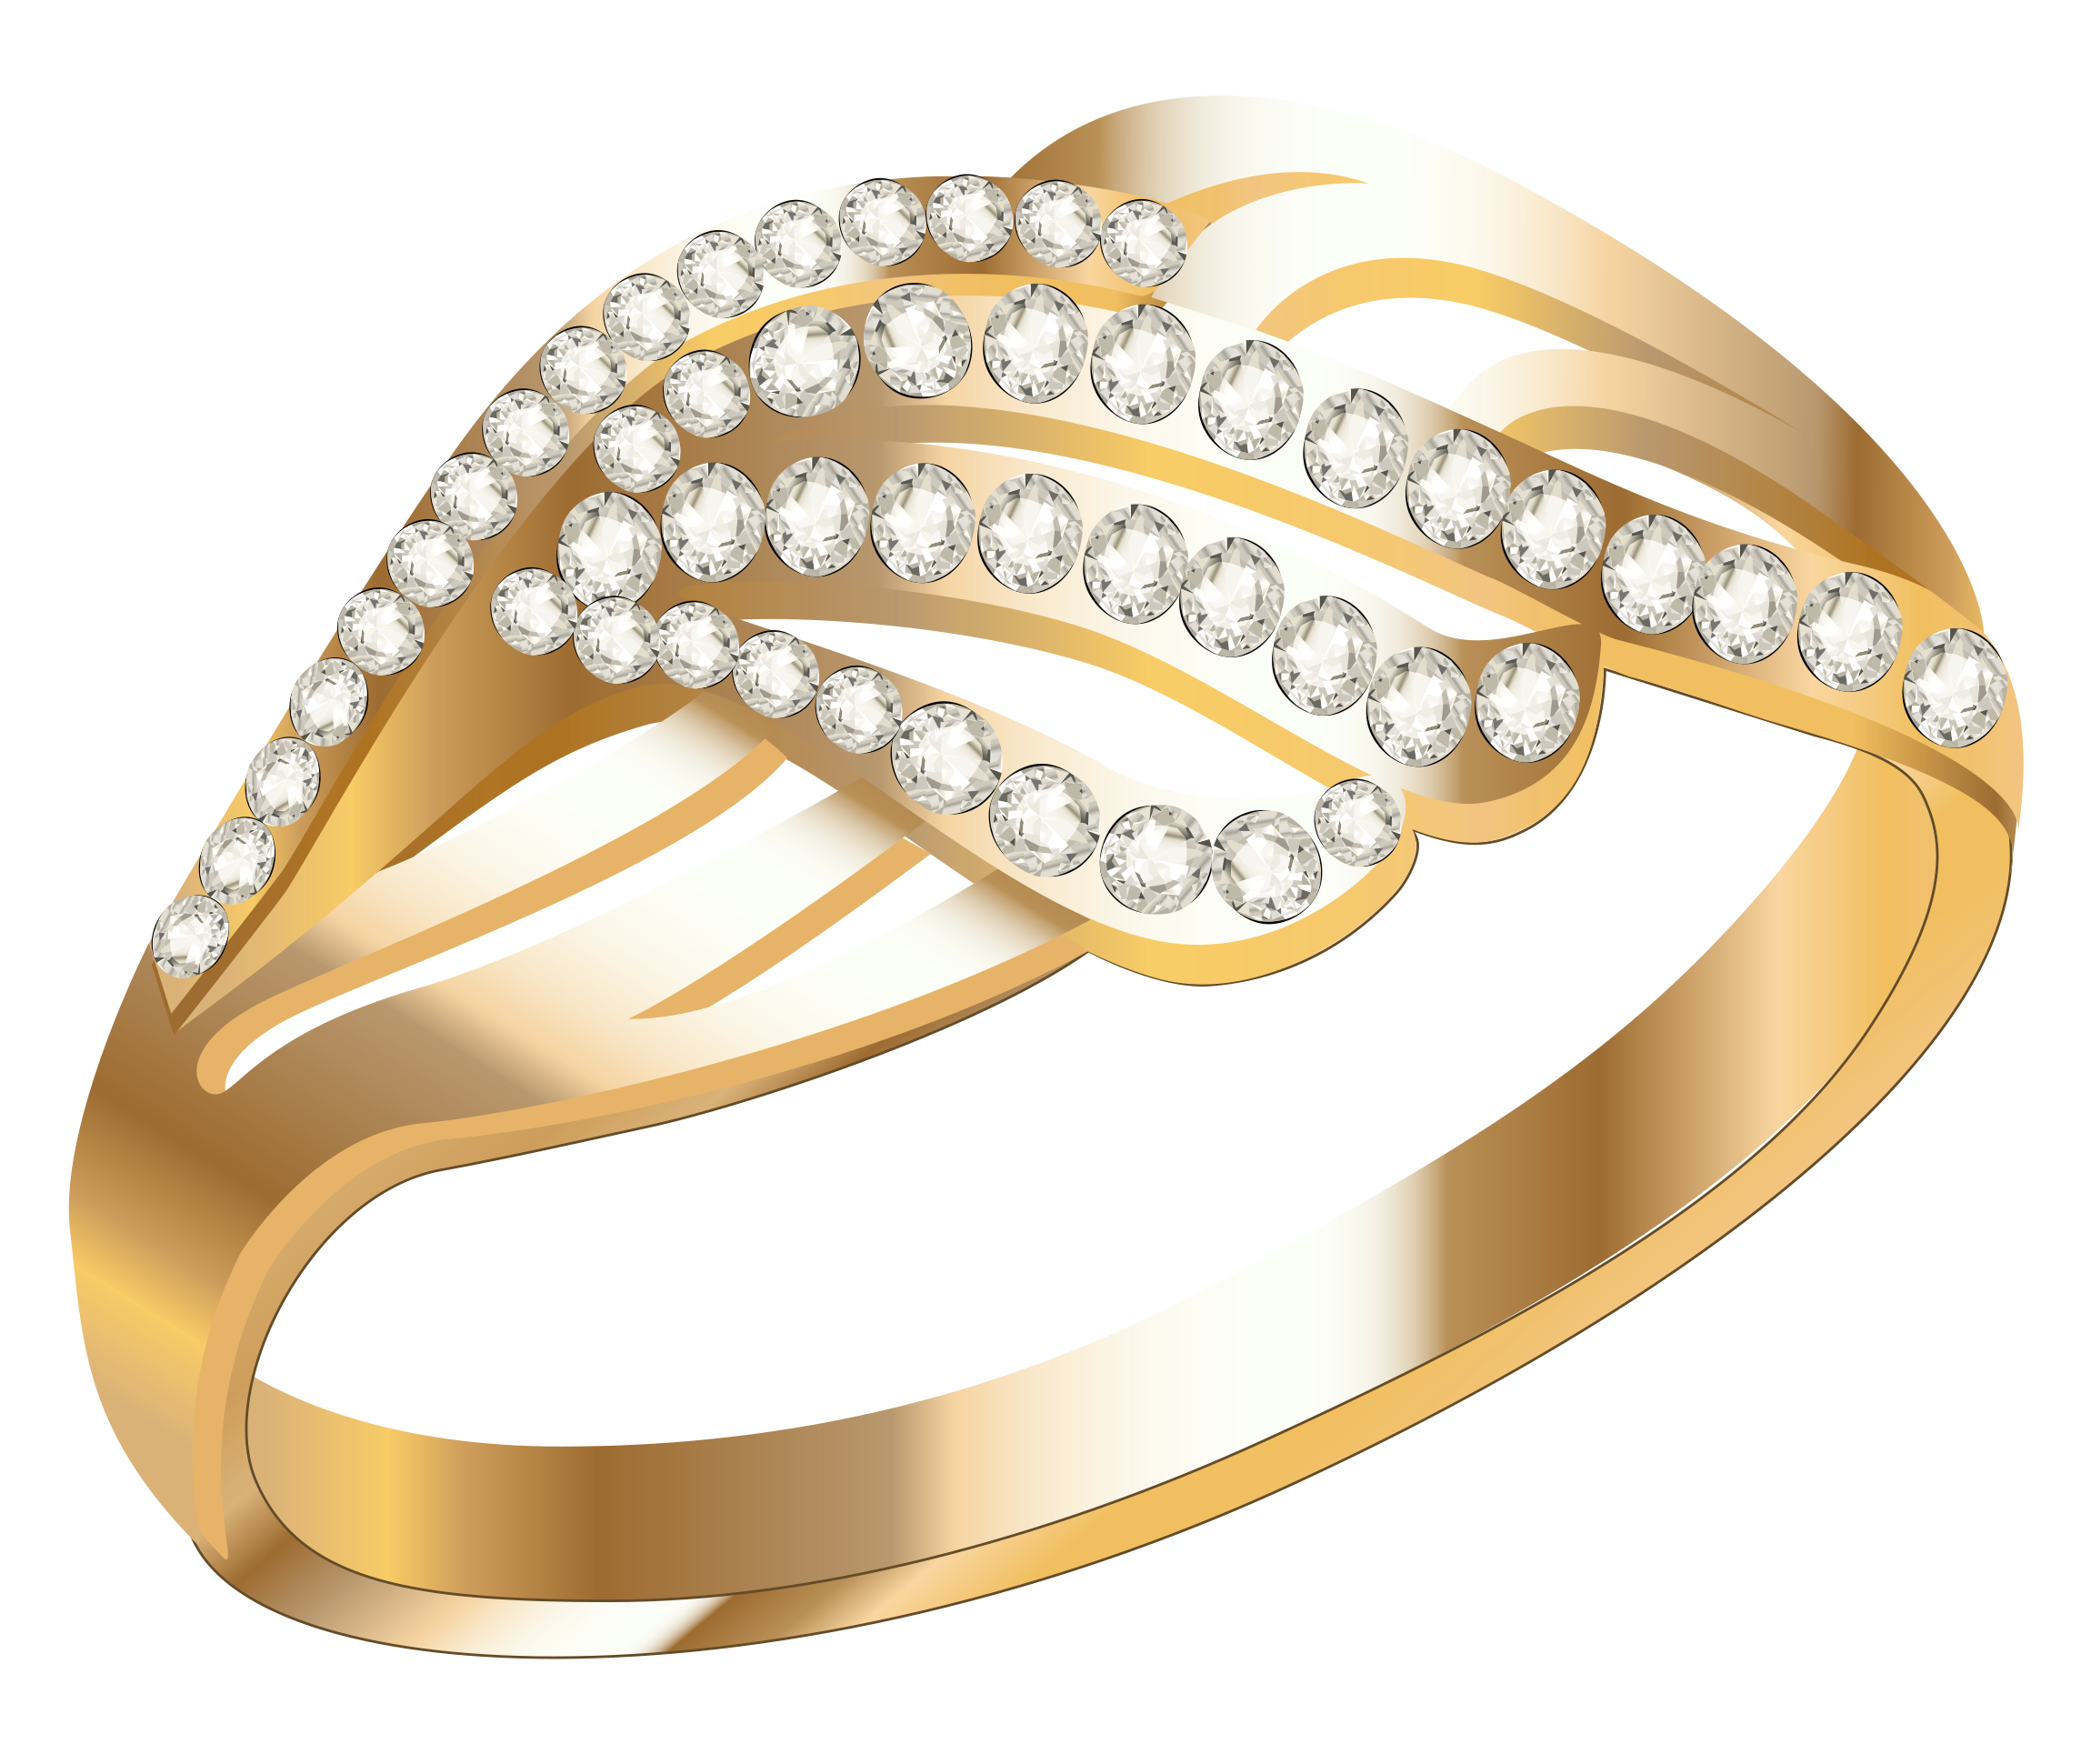 for golden ring and jewellery rings shop megastore dubai